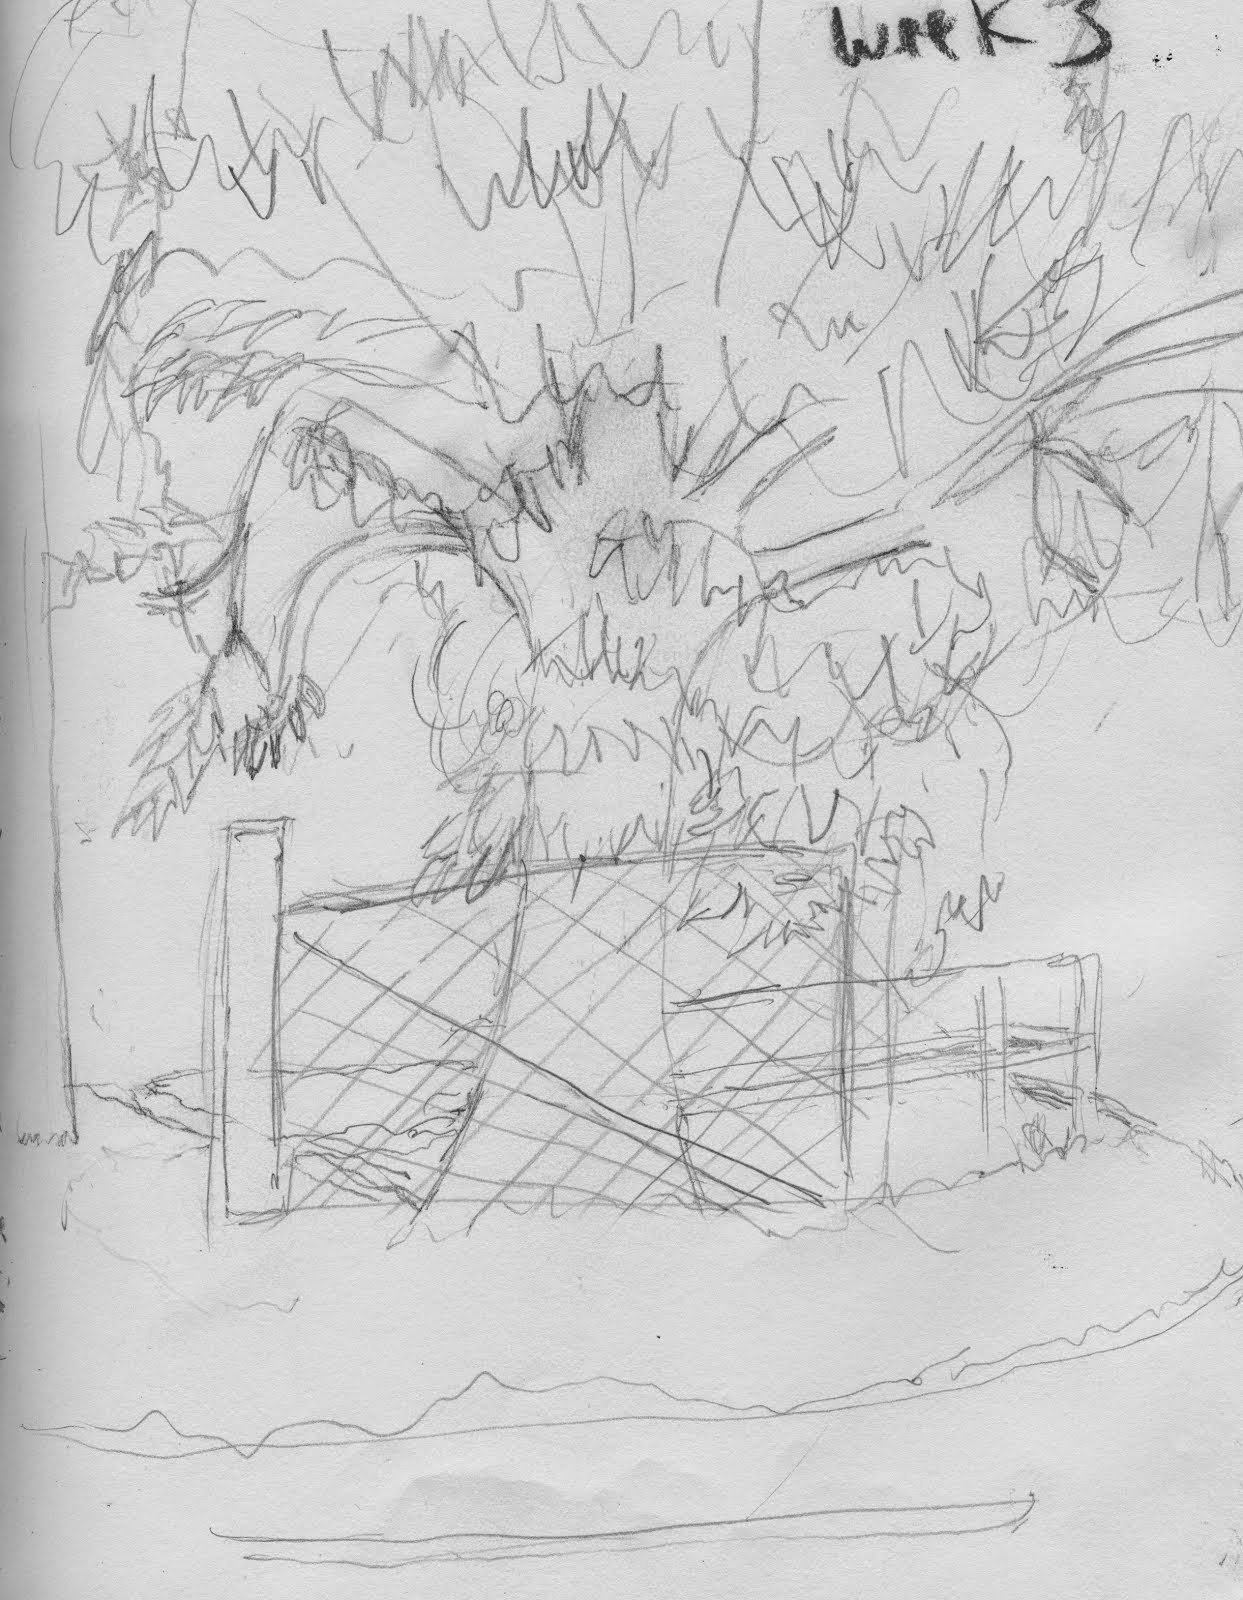 sketch of environment